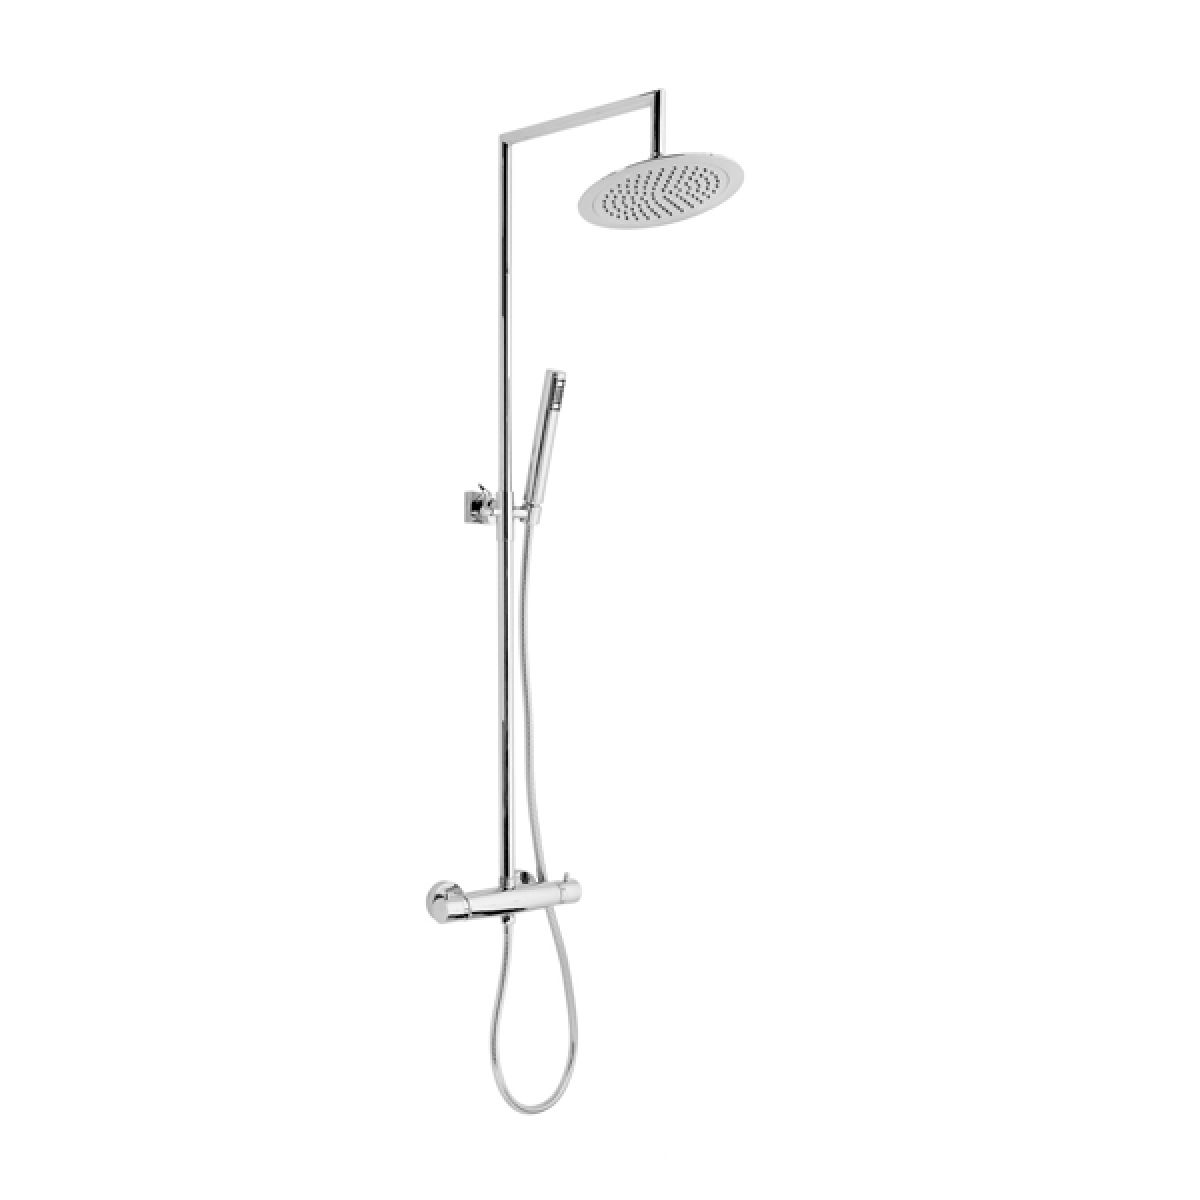 Frontline Lausanne Thermostatic Shower Column with ABS Fixed Head